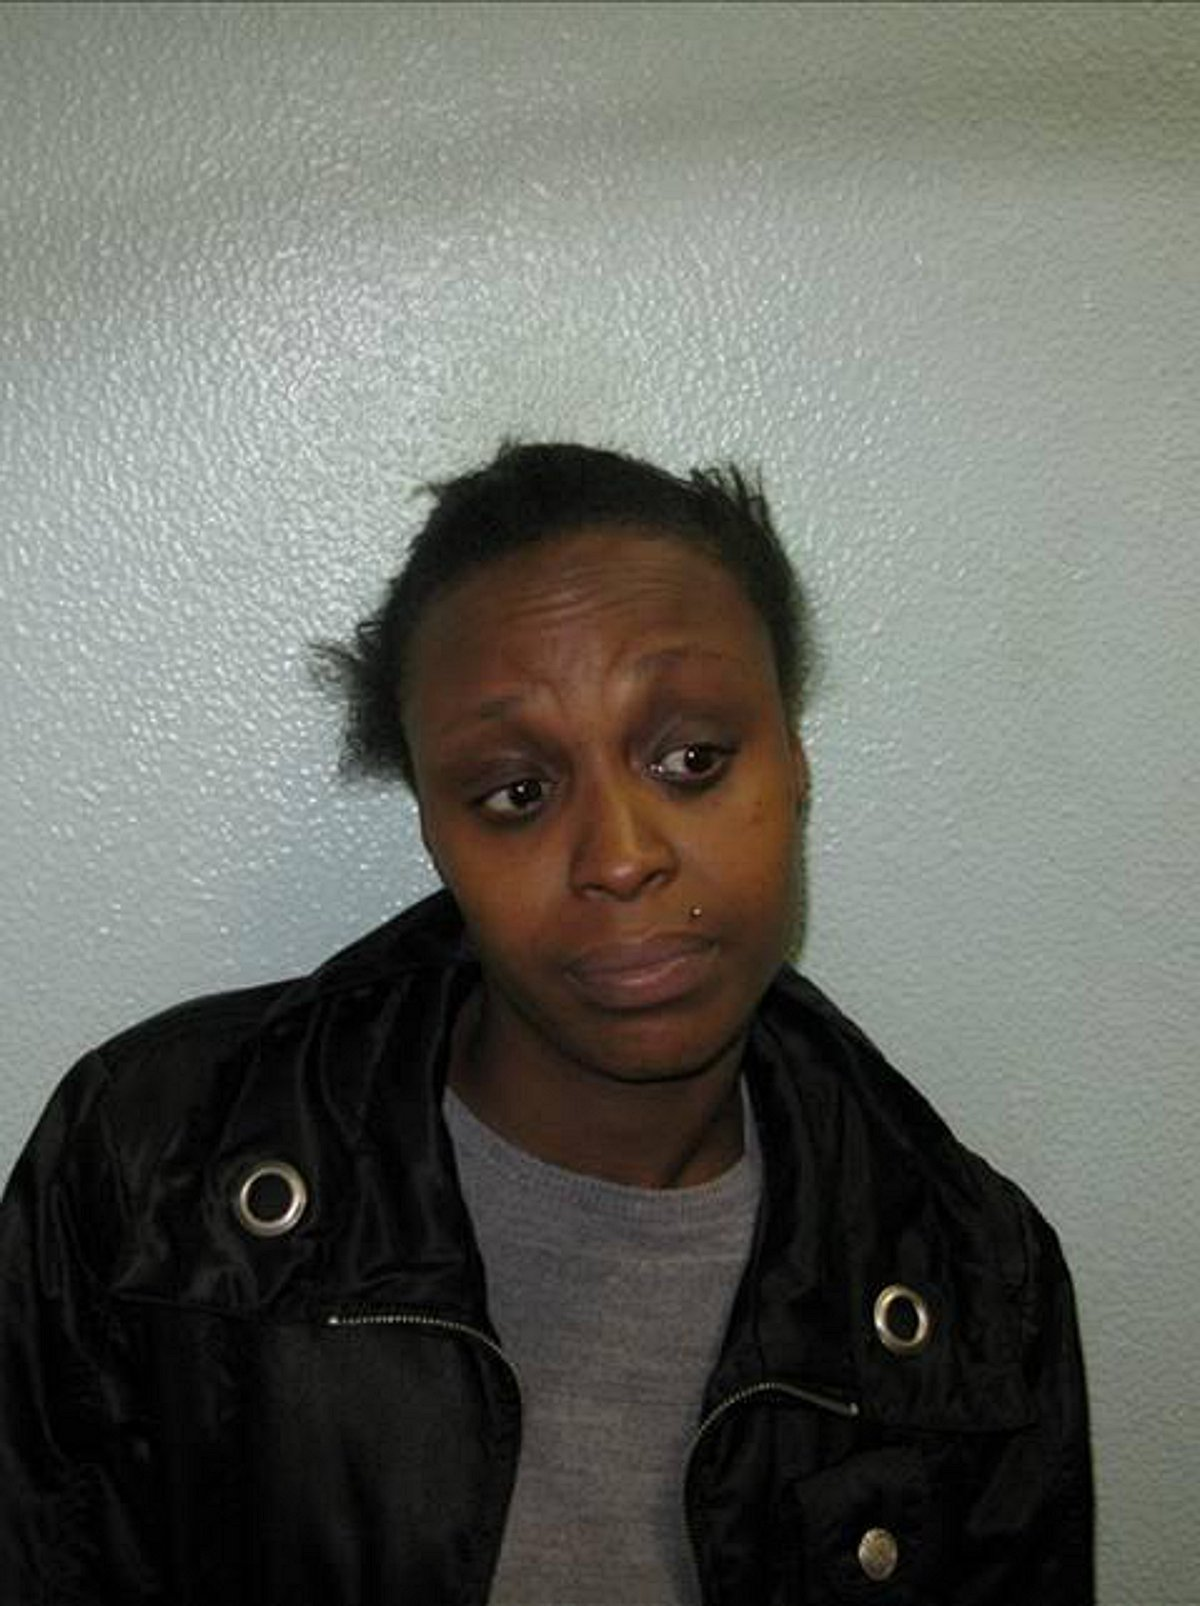 Wanted Wednesday: Five of Lewisham police's most wanted. Do you know them?